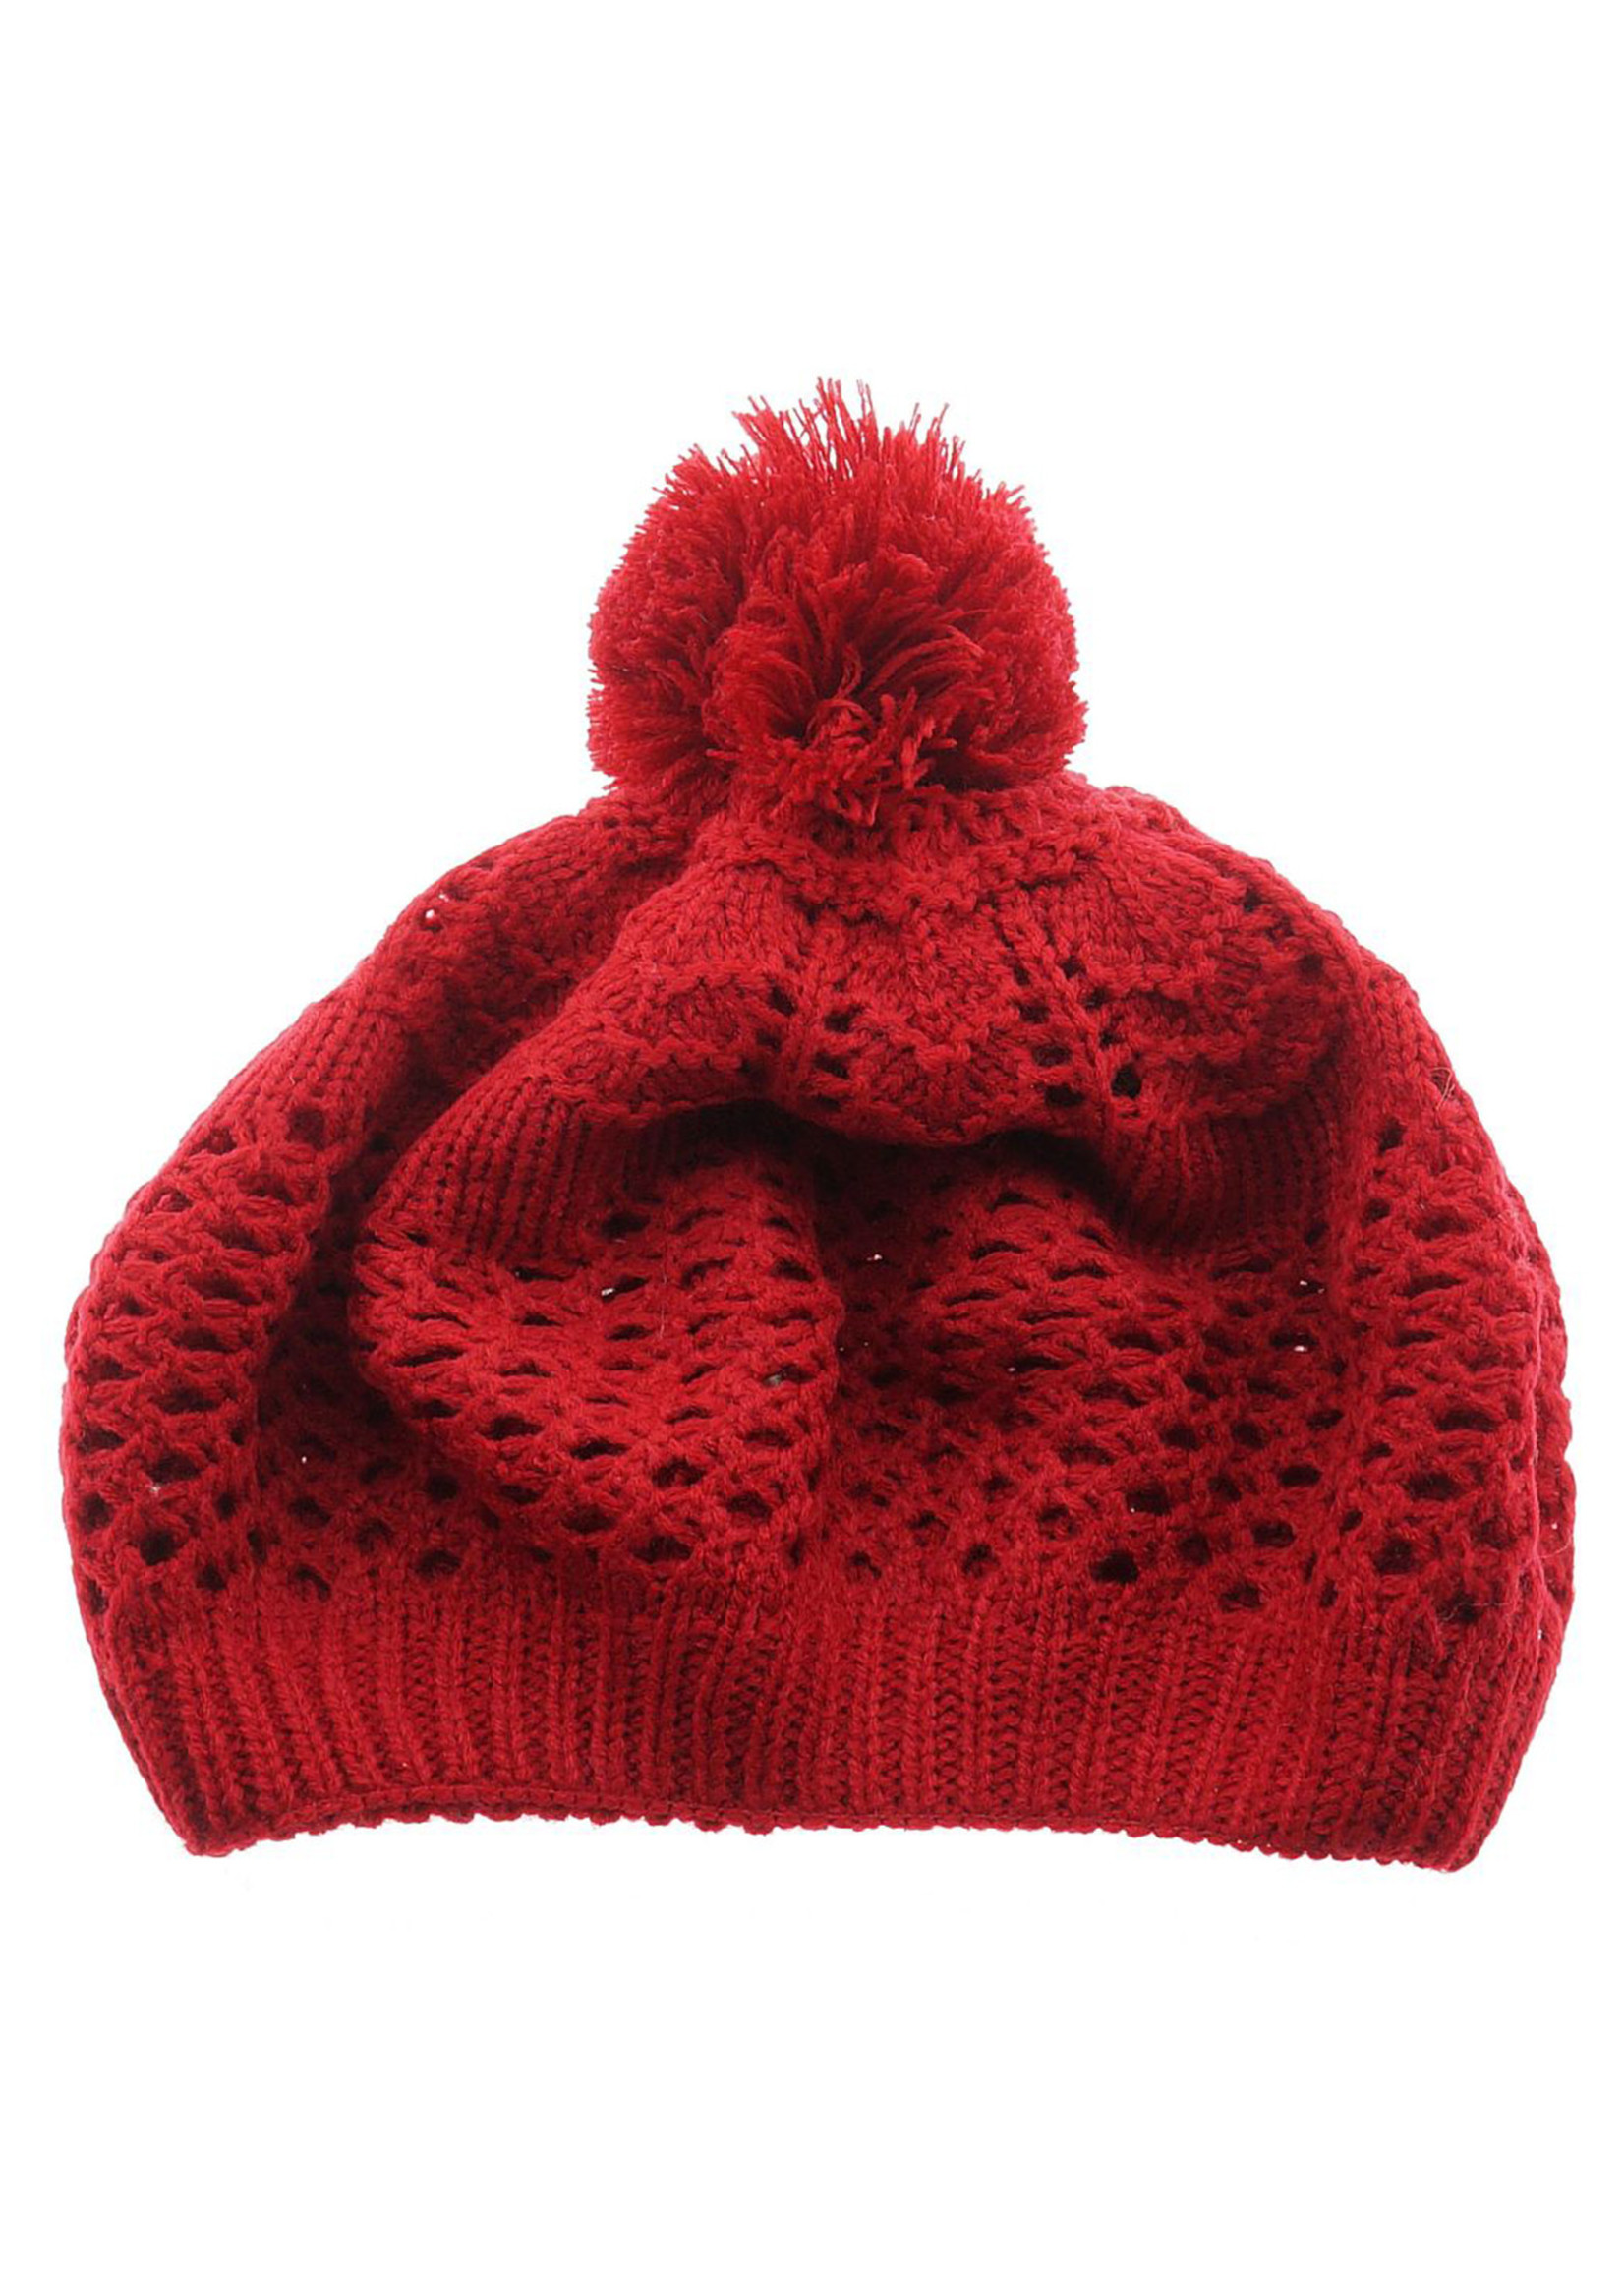 Knitted hat in Red